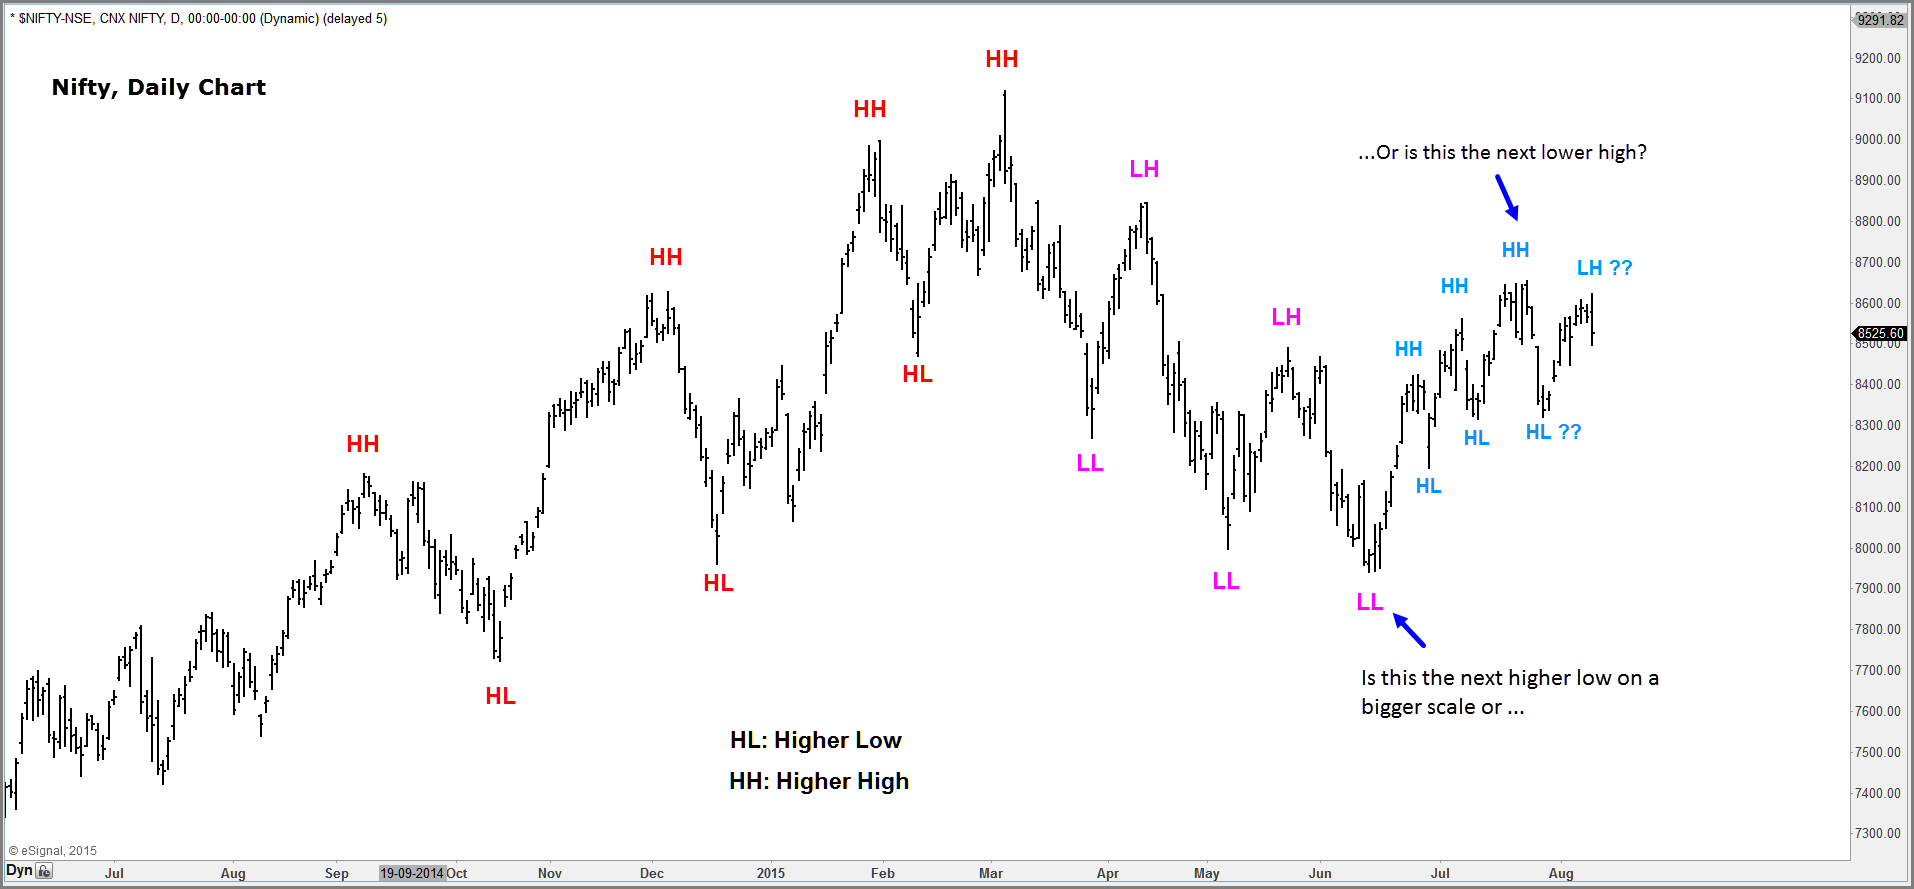 Nifty: A Higher Low Or A Lower High? - Mapping Markets